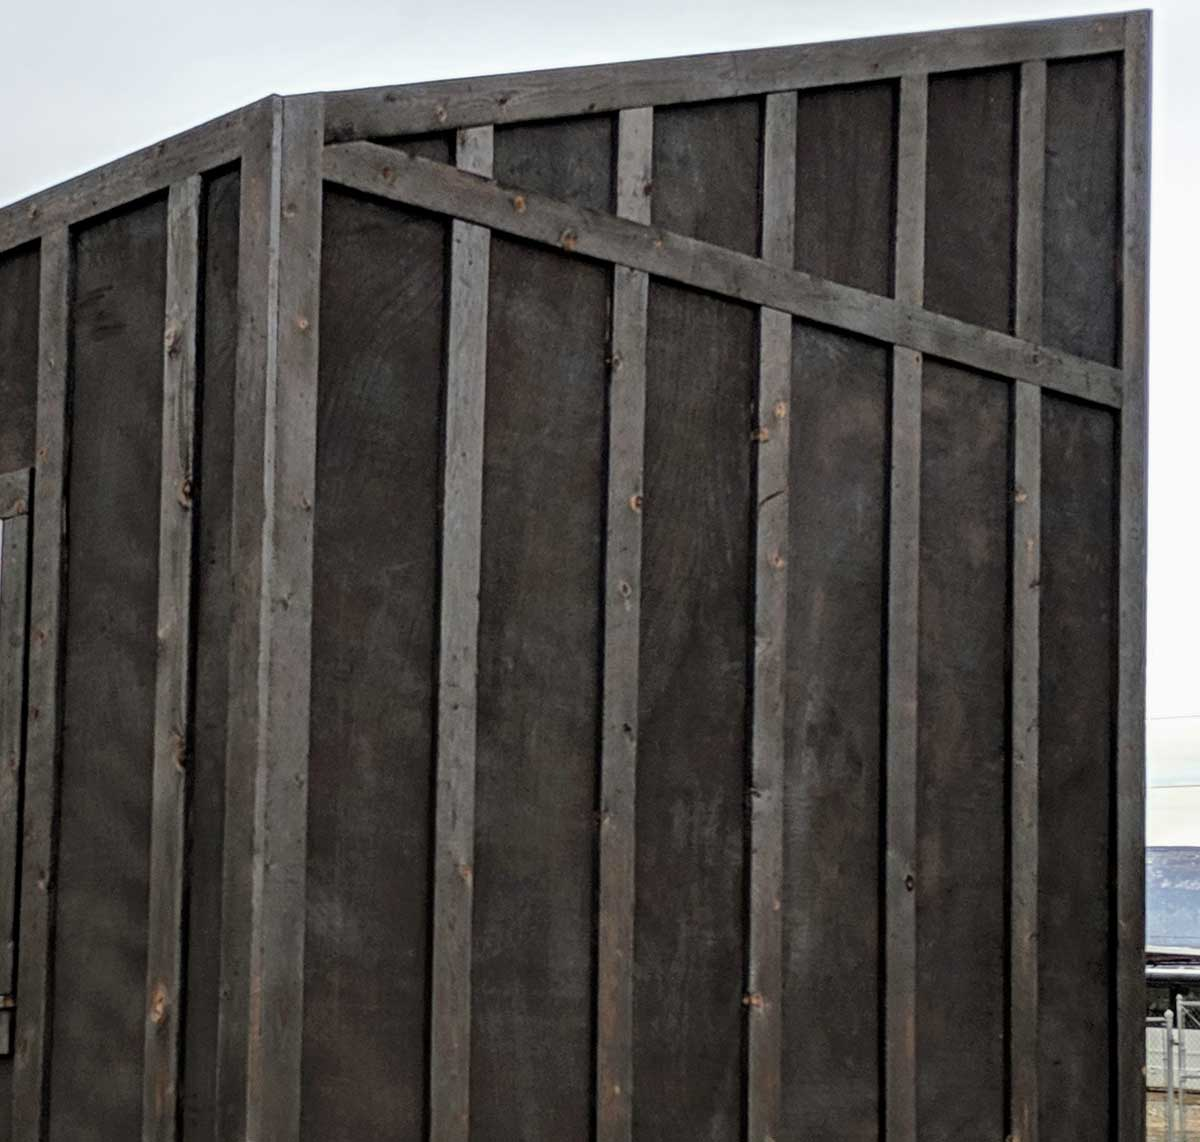 Add Shou Sugi Ban Wood Siding - Low or no maintenance, rot & decay resistant, non-toxic